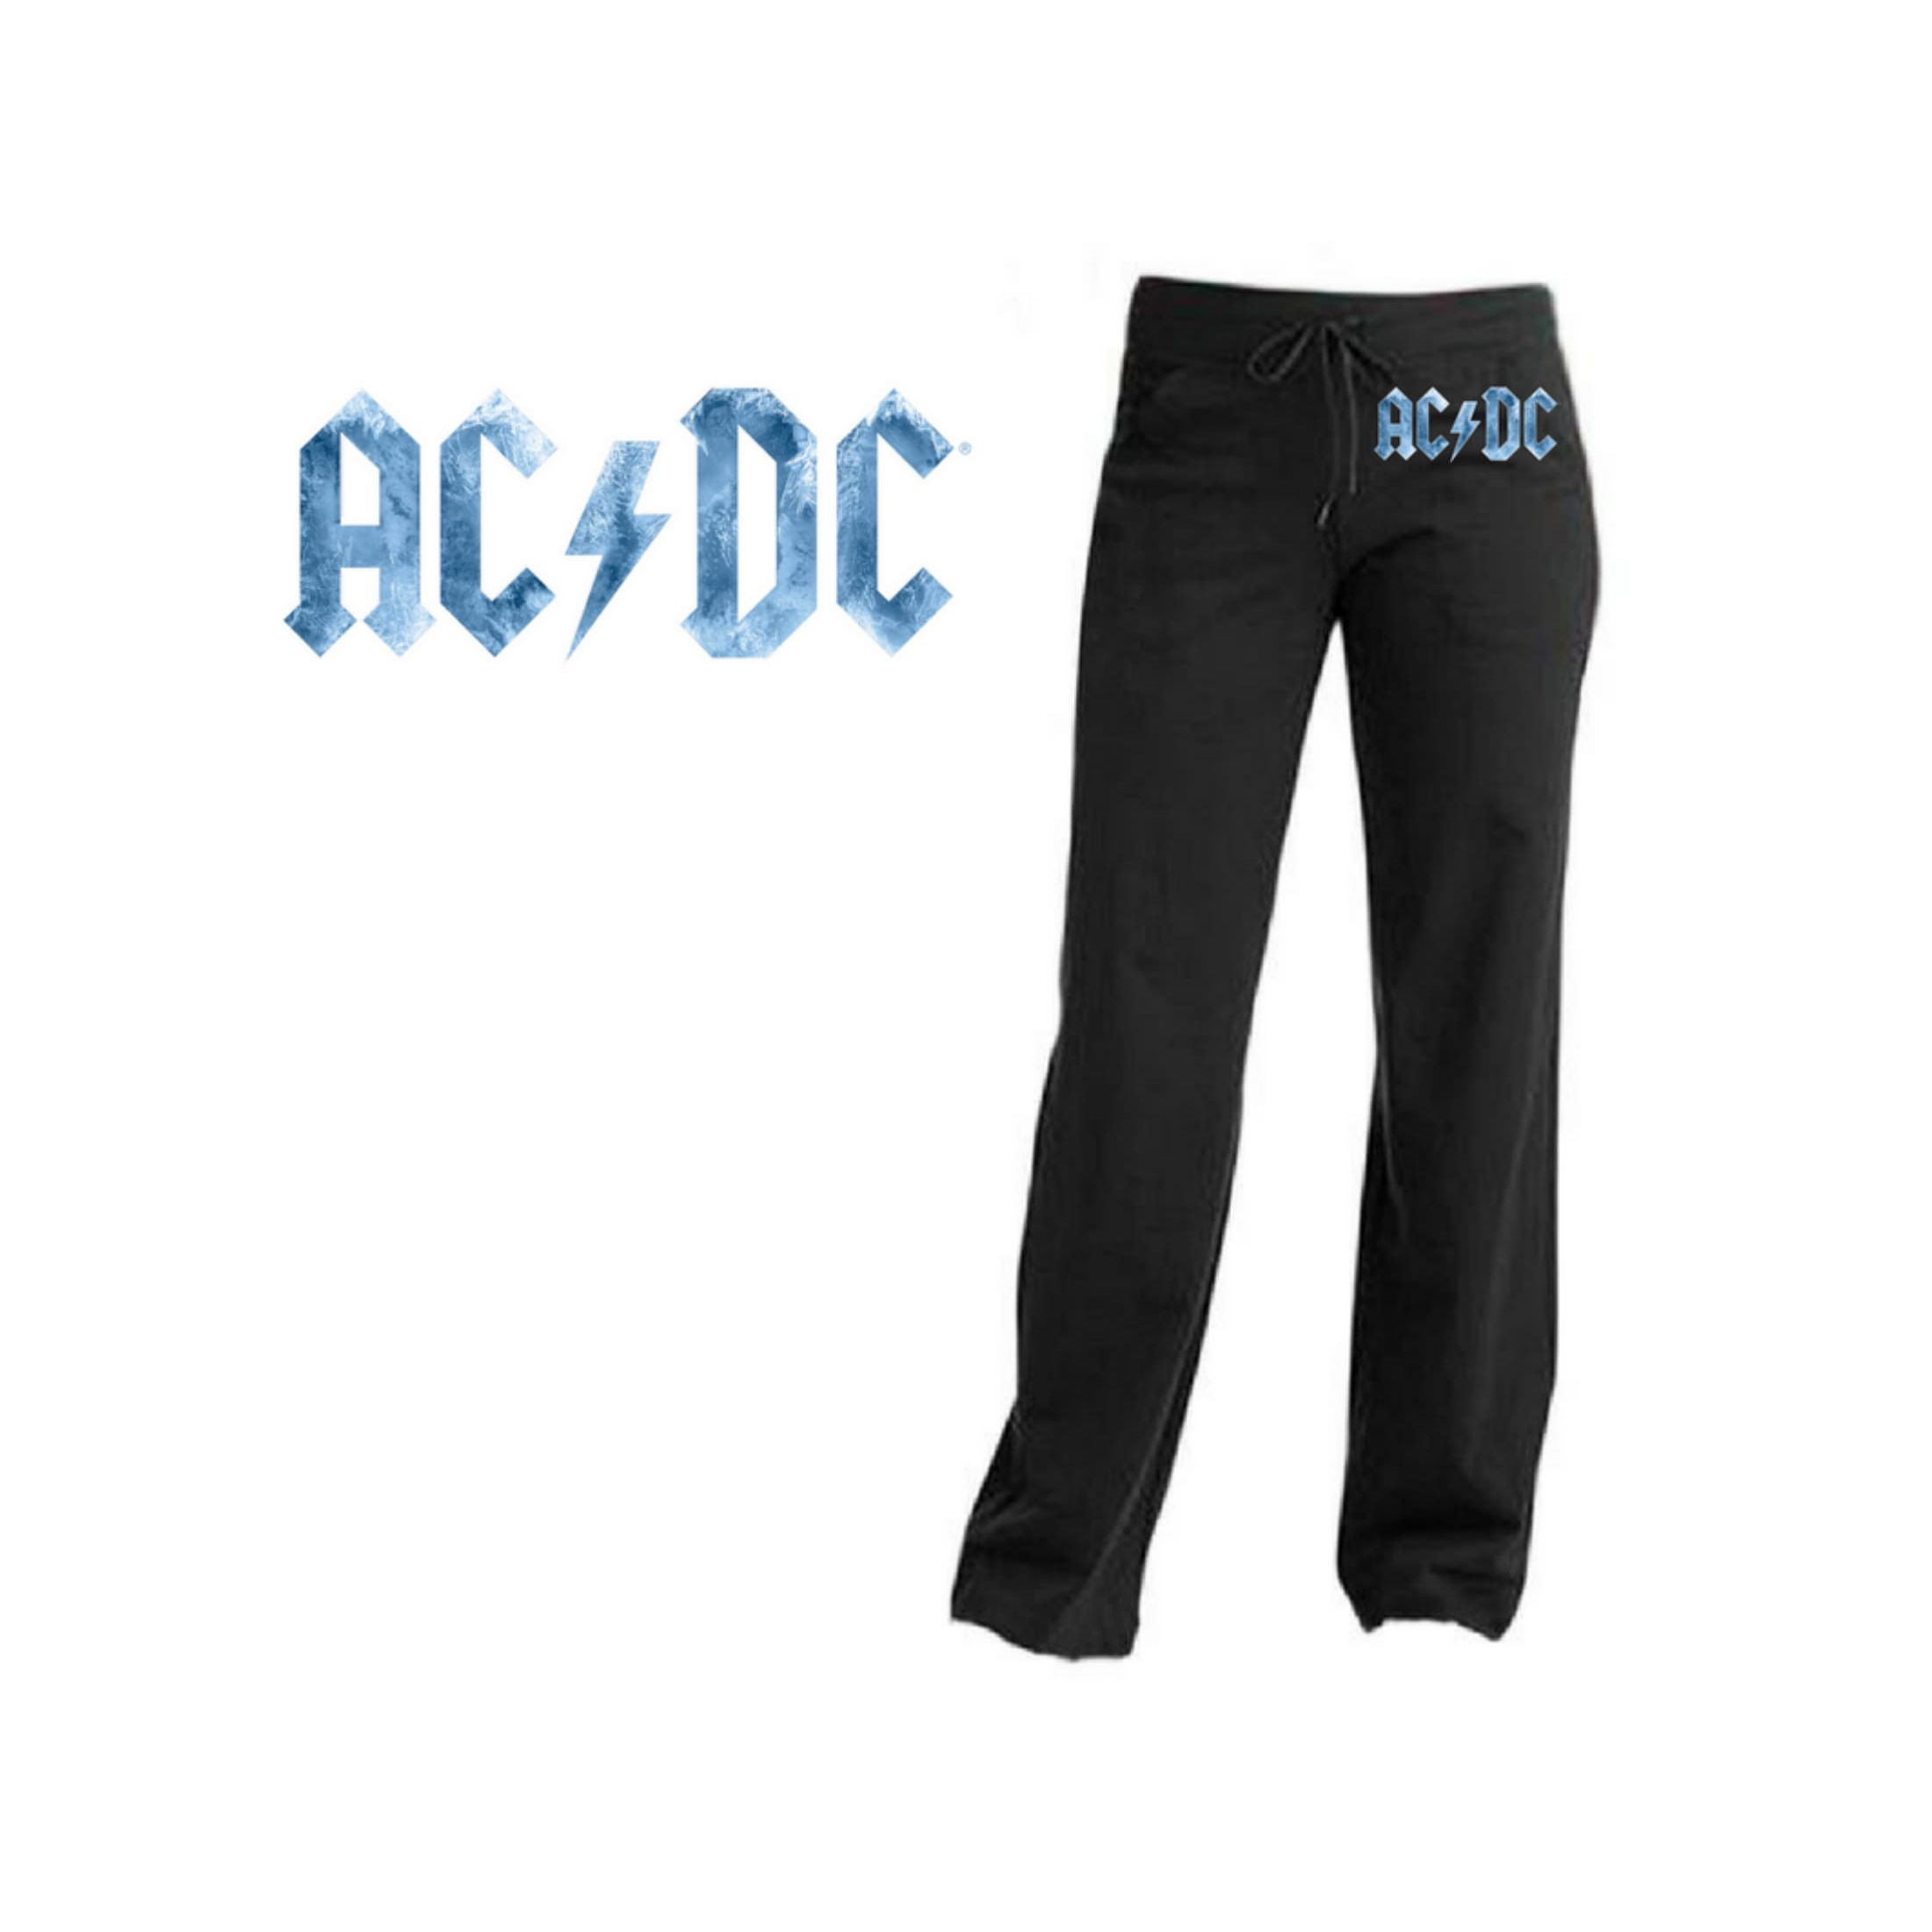 AC/DC Ice Logo Yoga Pants